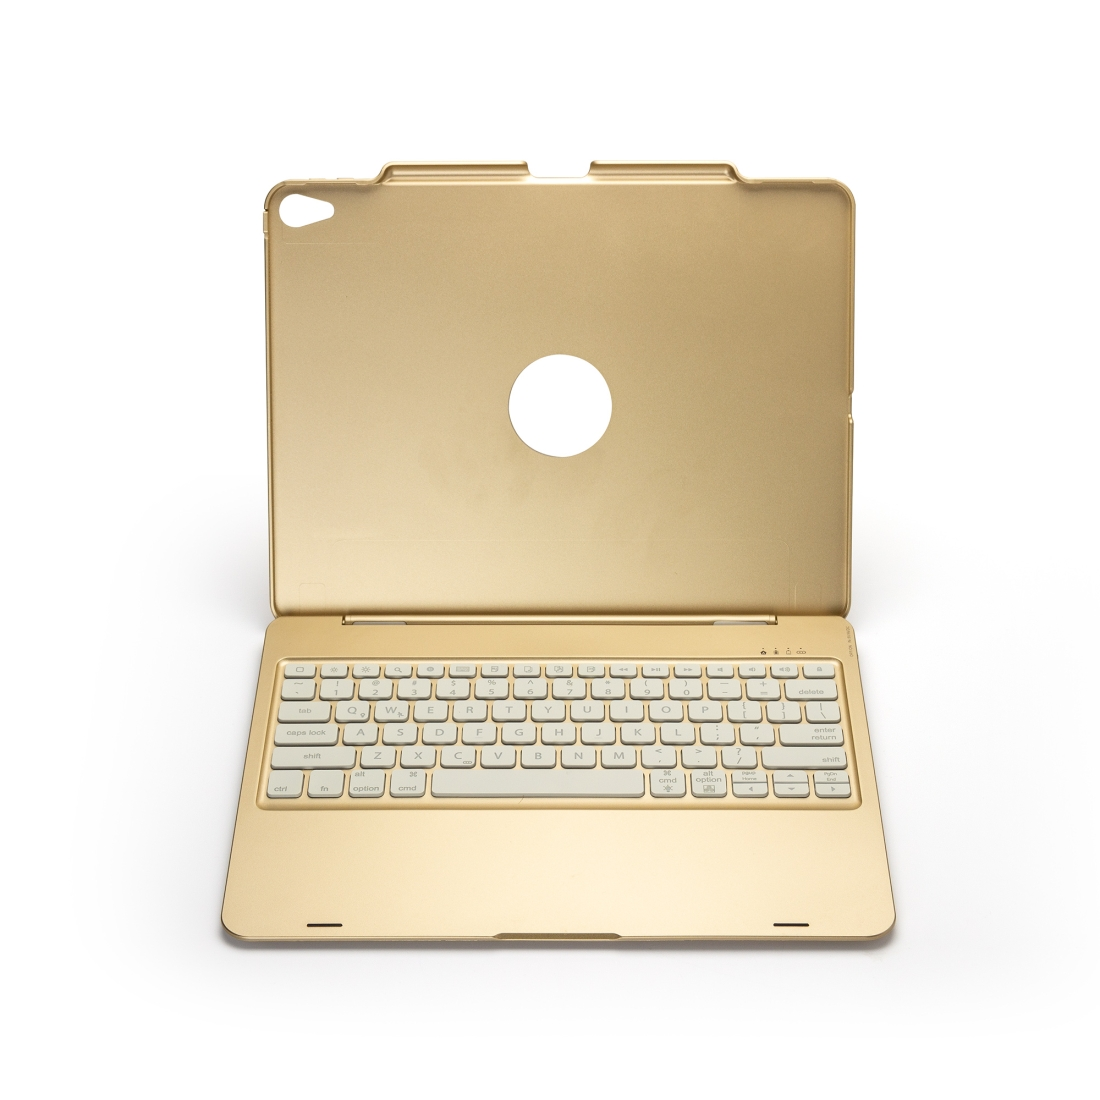 iPad Pro 12.9 Case With Keyboard (2018) With Leather Case & Backlit Keyboard (Gold)